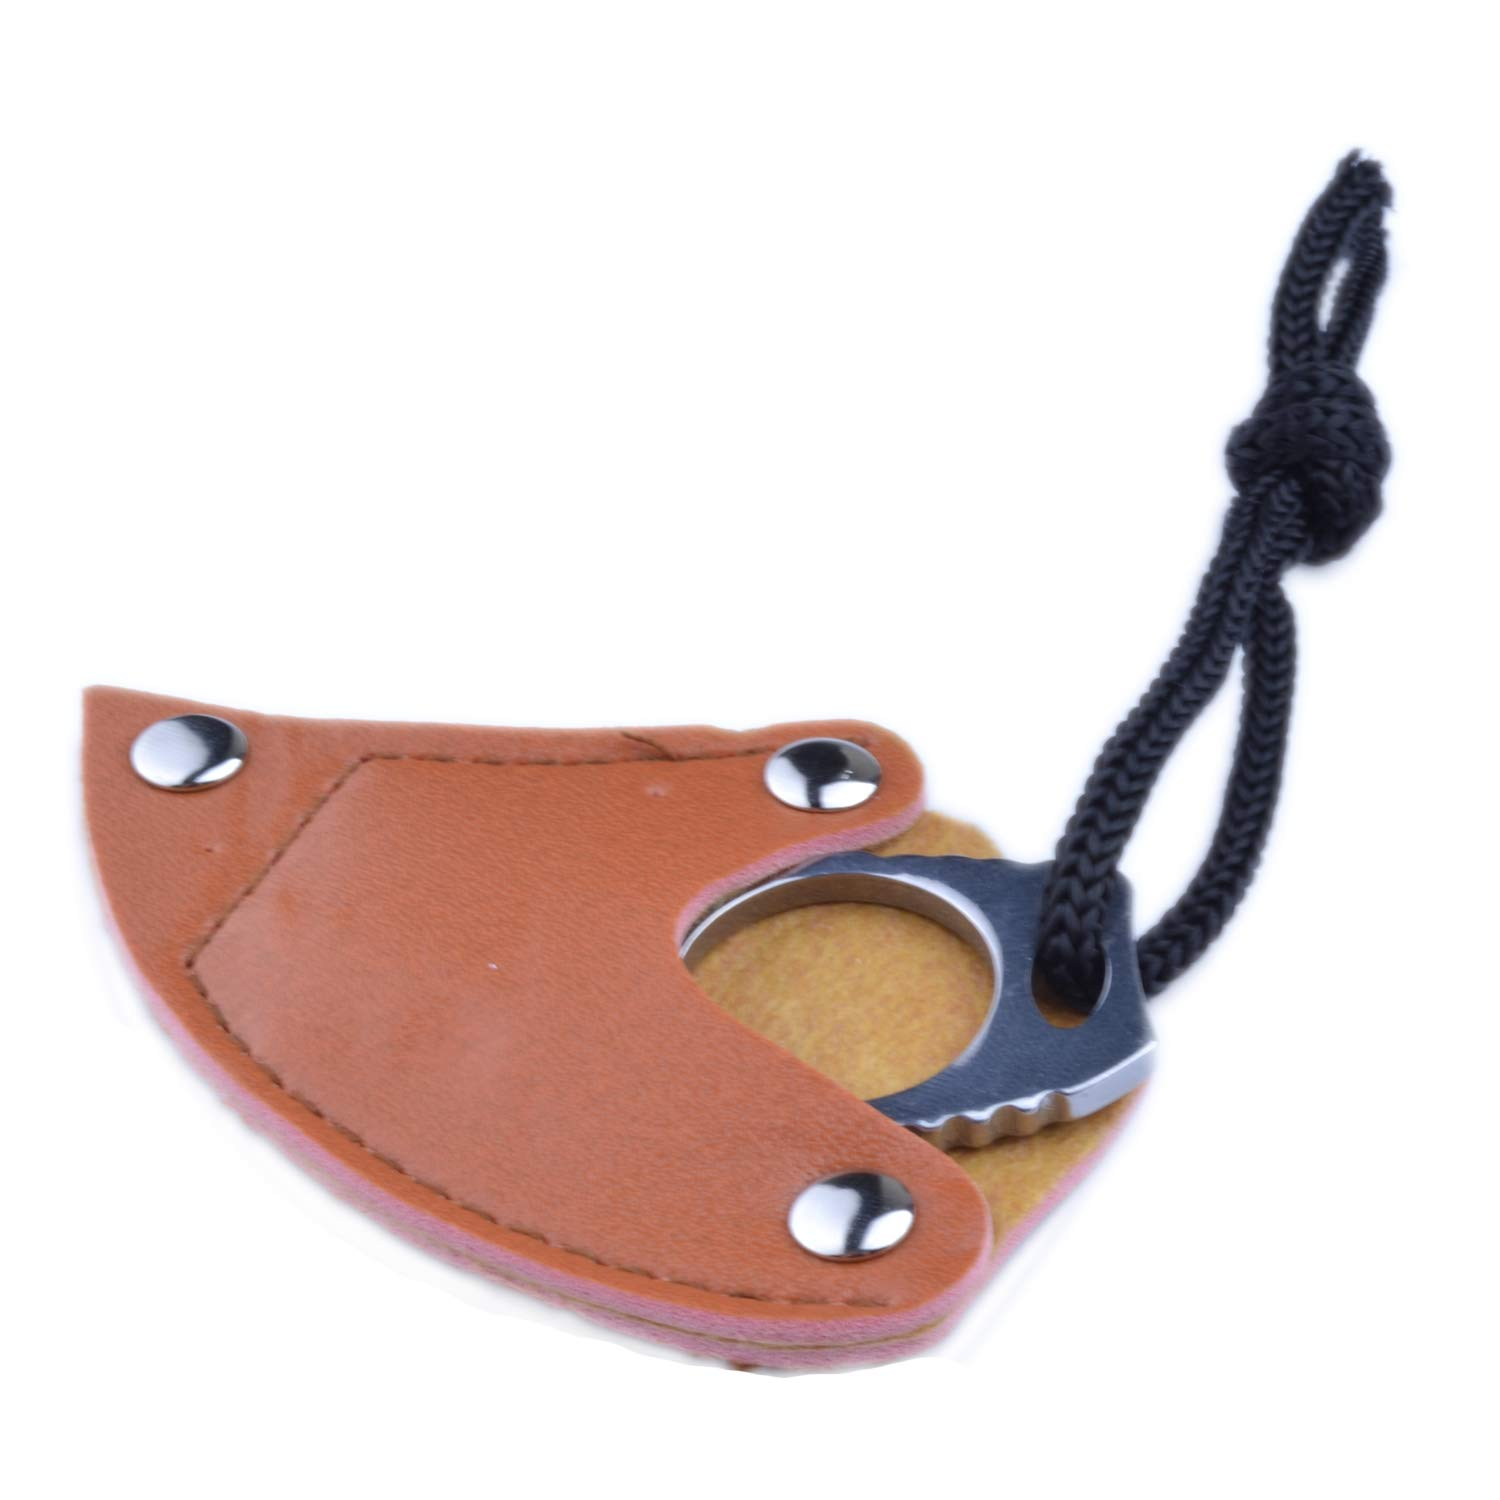 pranovo Steel Finger Claw Knives Hook Fixed Blade Knife Tool for Camping Hunting Outdoor Mountaineering Rock Climbing Equipment Hook Ring